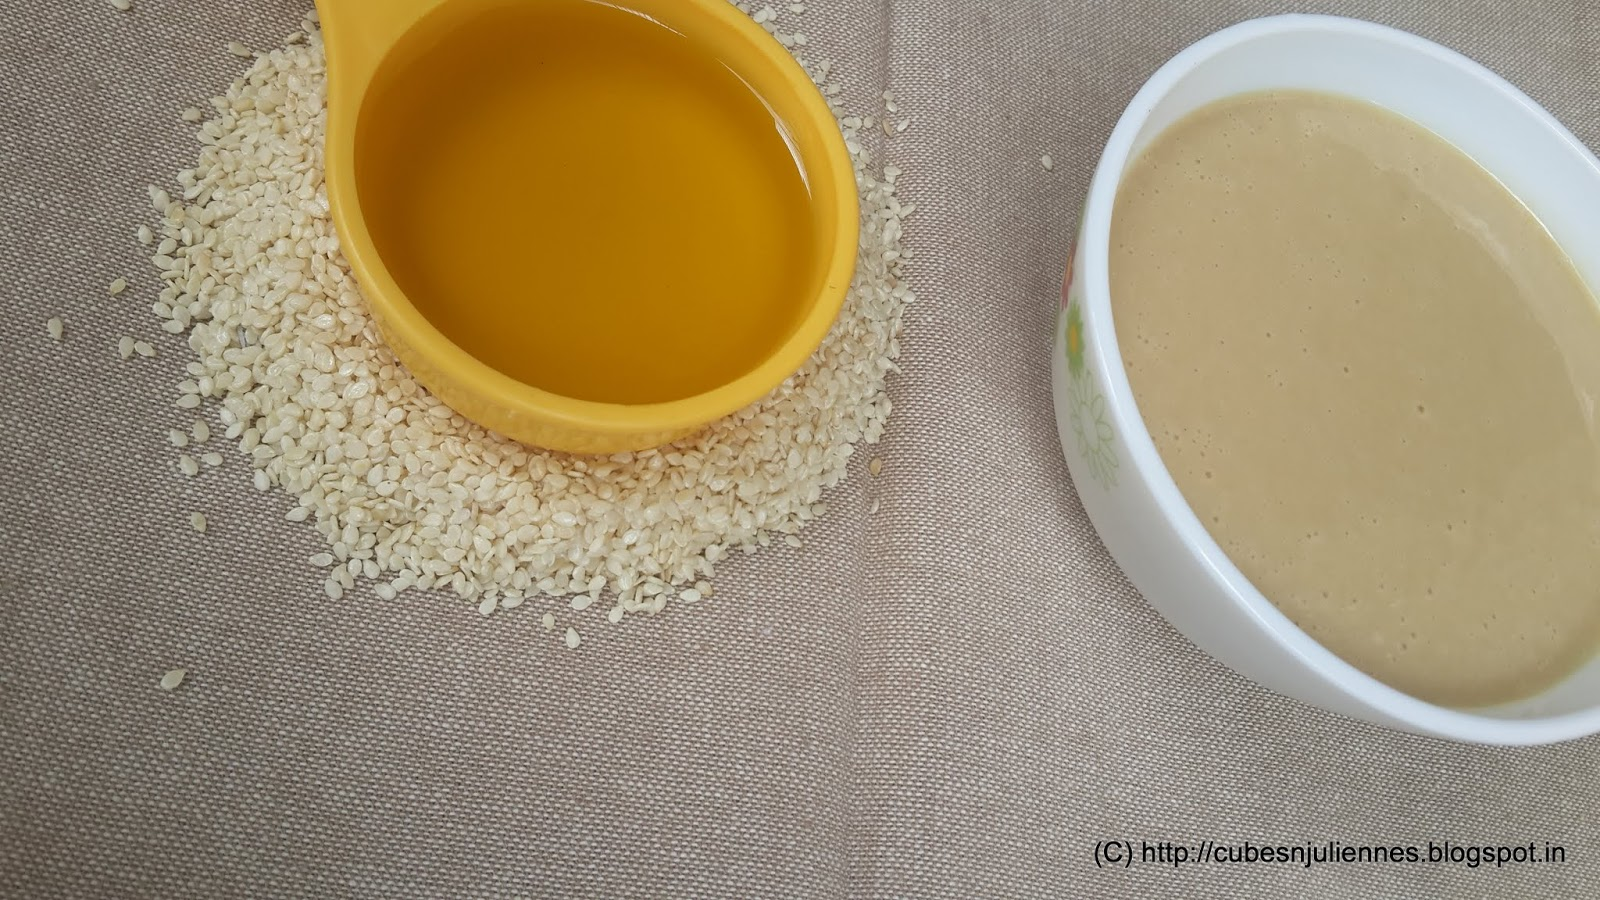 HOW TO MAKE TAHINI PASTE AT HOME - Cubes N Juliennes